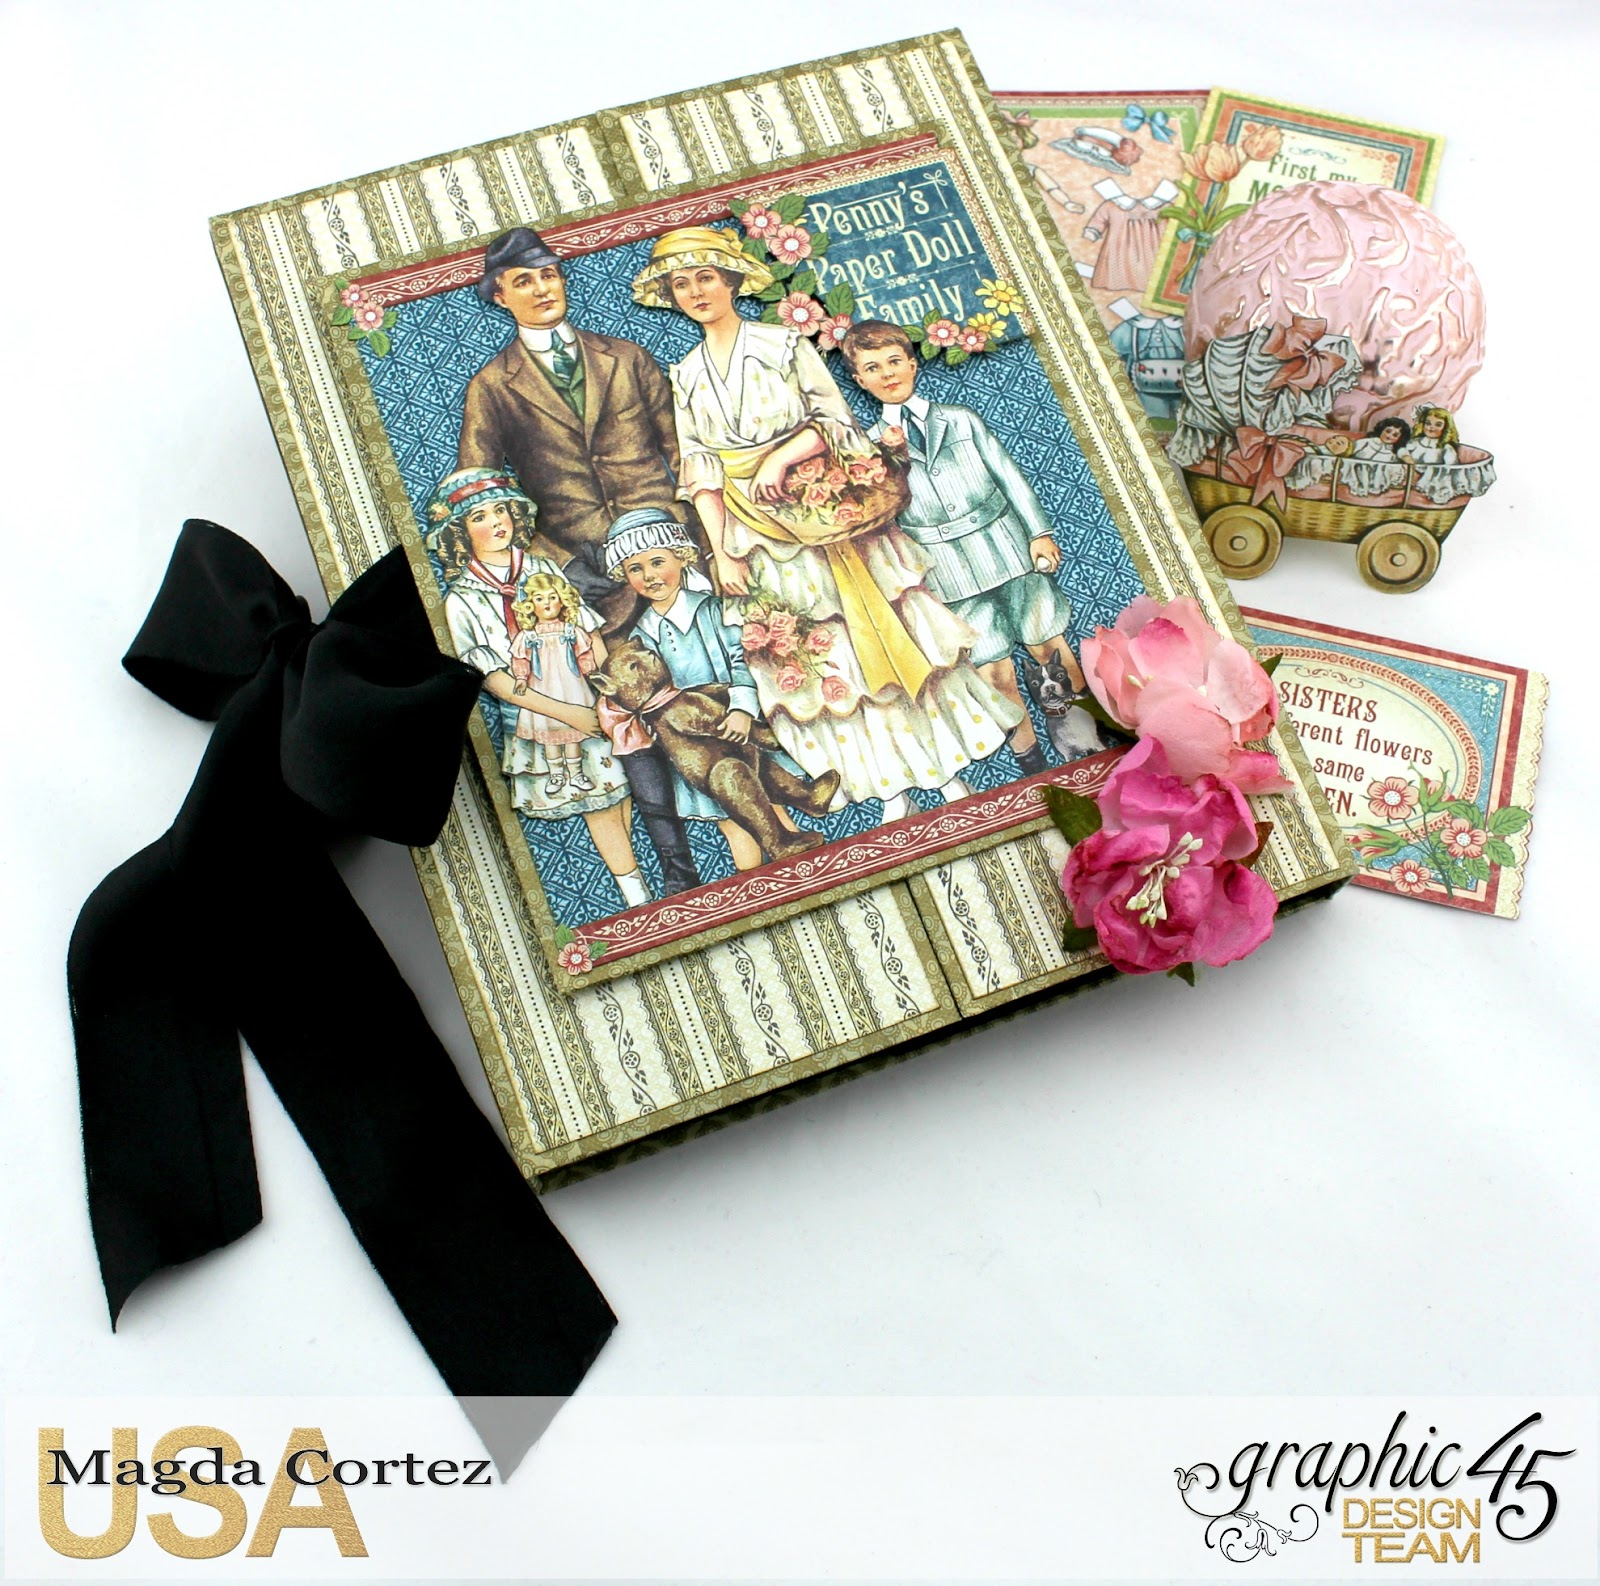 Penny's Paper Doll Family Book, Penny's Paper Doll Family, By Magda Cortez, Product of Graphic45, Photo 01 of 12.jpg